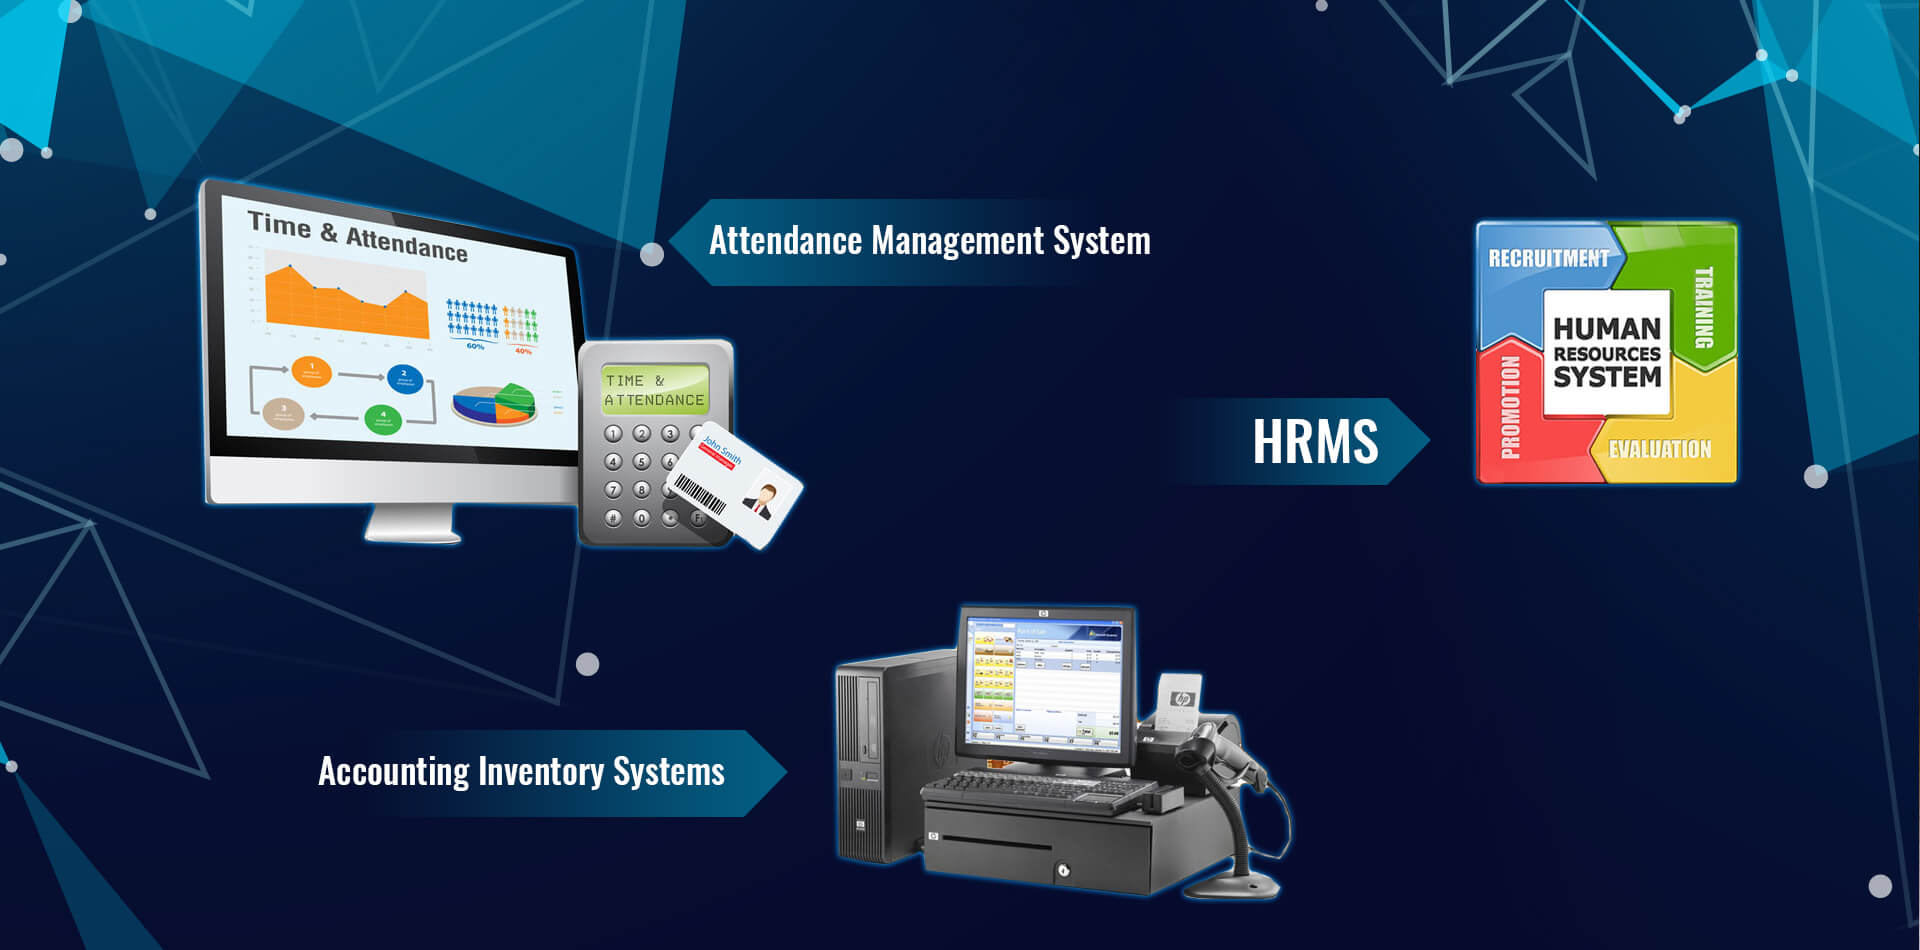 Human Resournce Management System